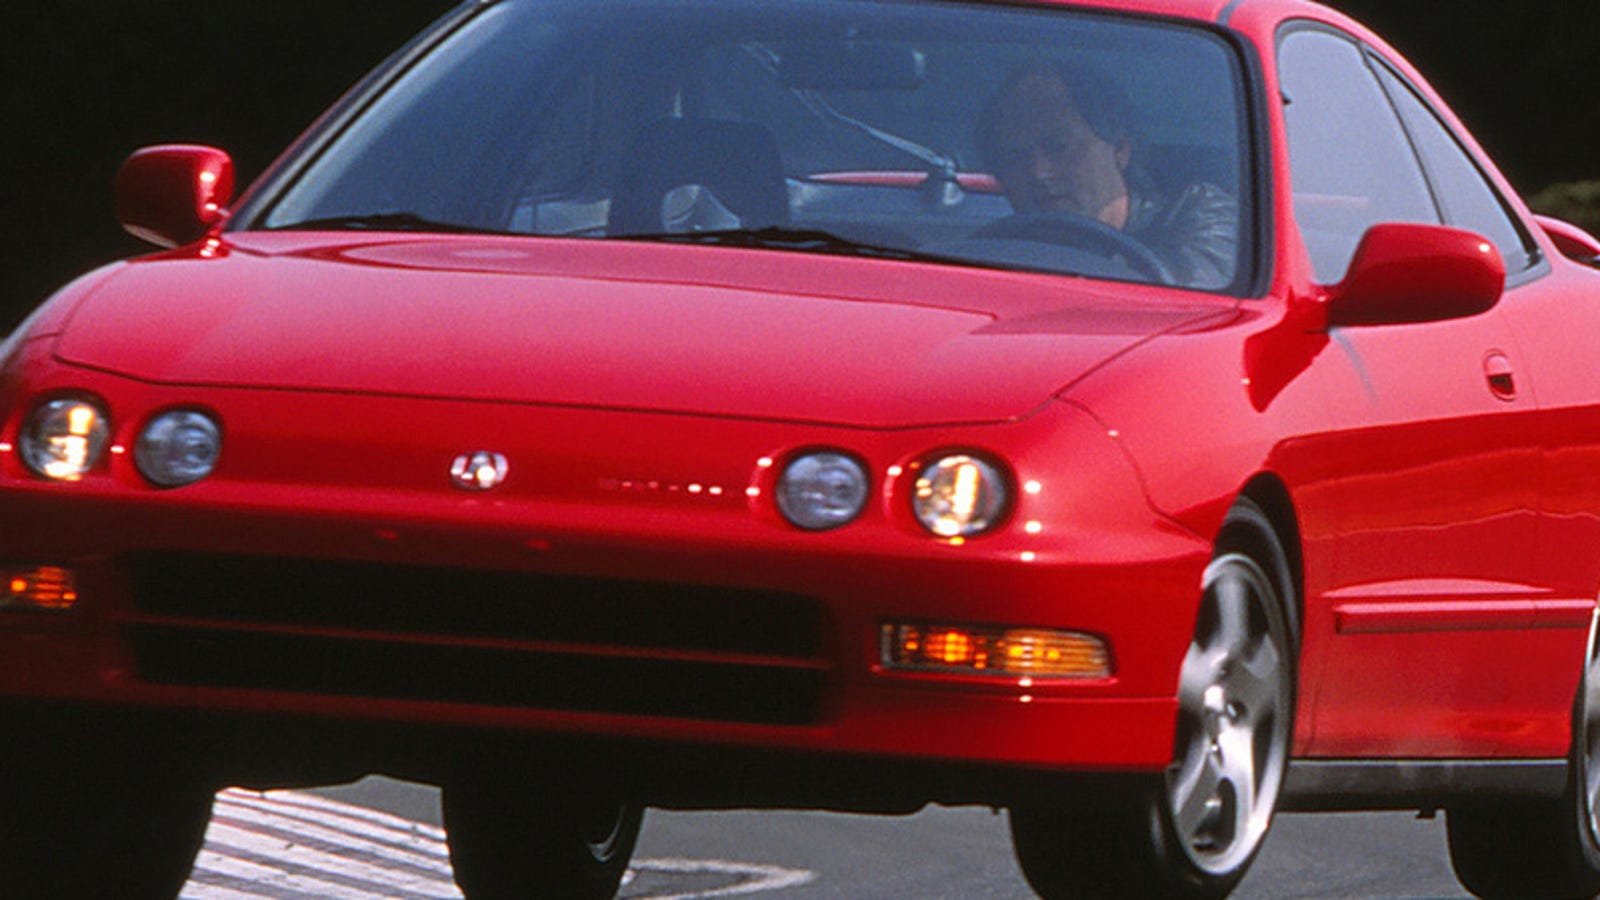 The Acura Integra Is Still One Of America's Top-Ten Most